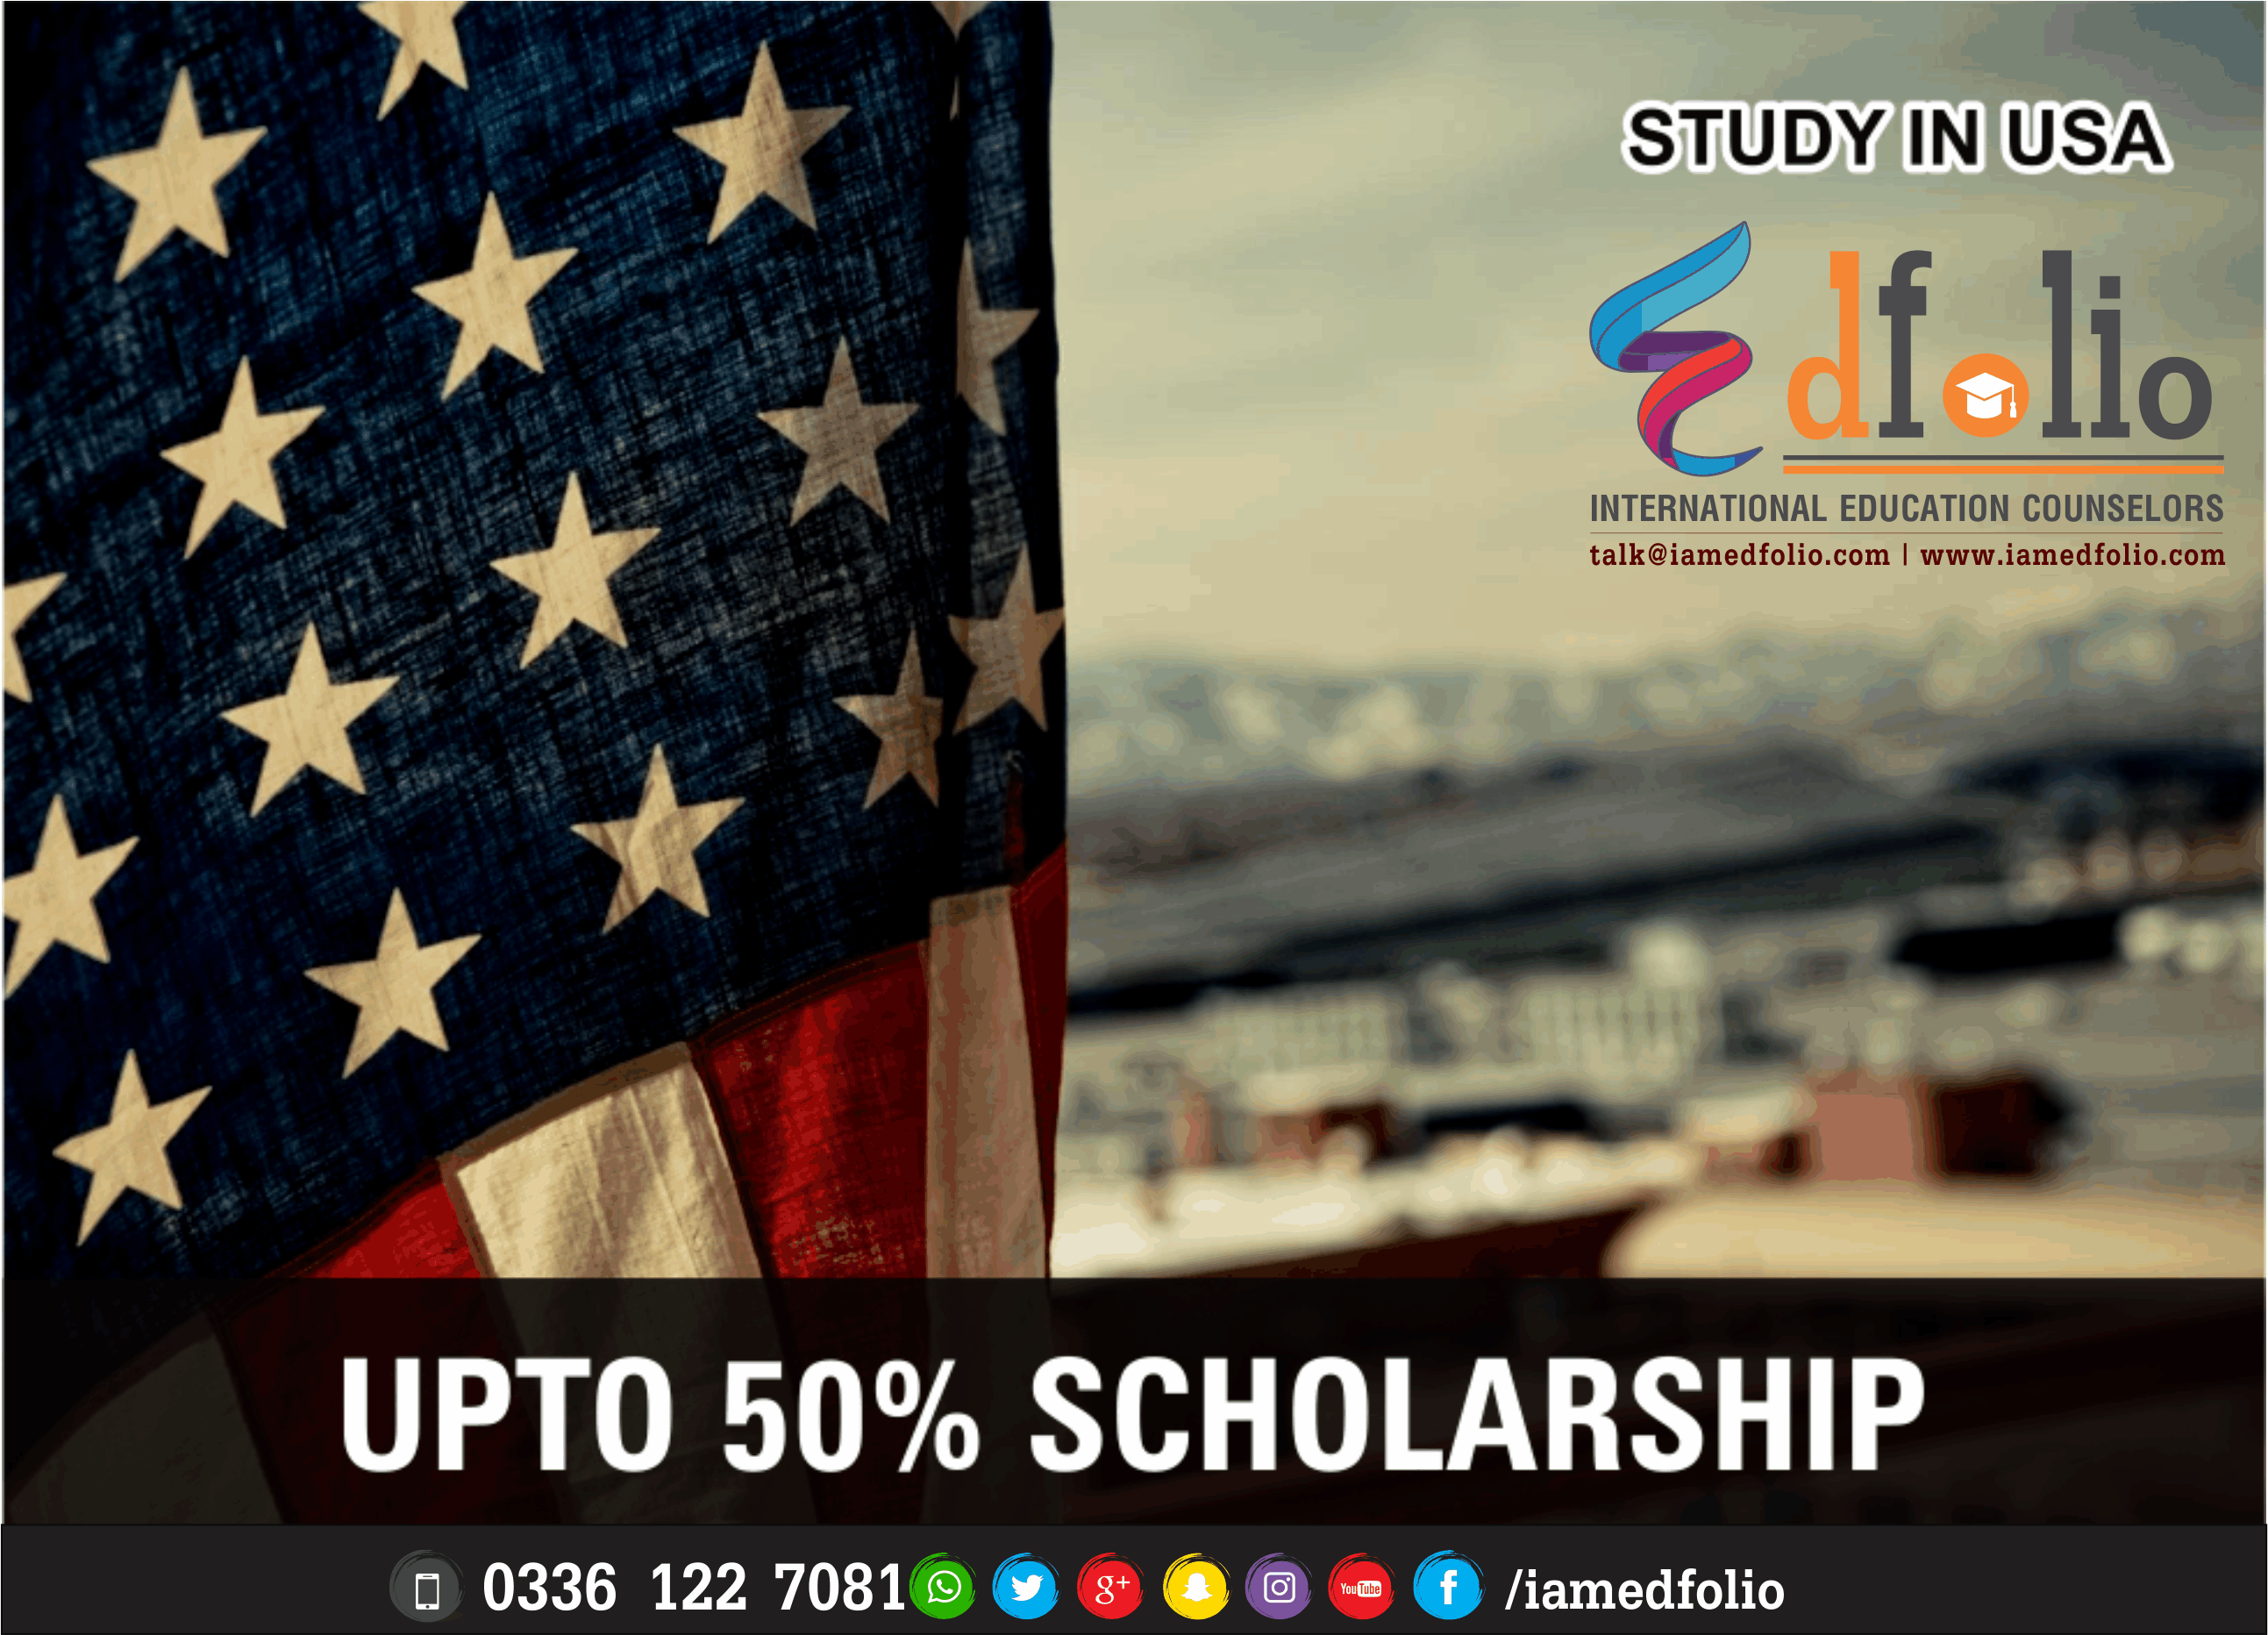 SCHOLARSHIPS IN USA - EdFolio International Education Consultant and Counselors